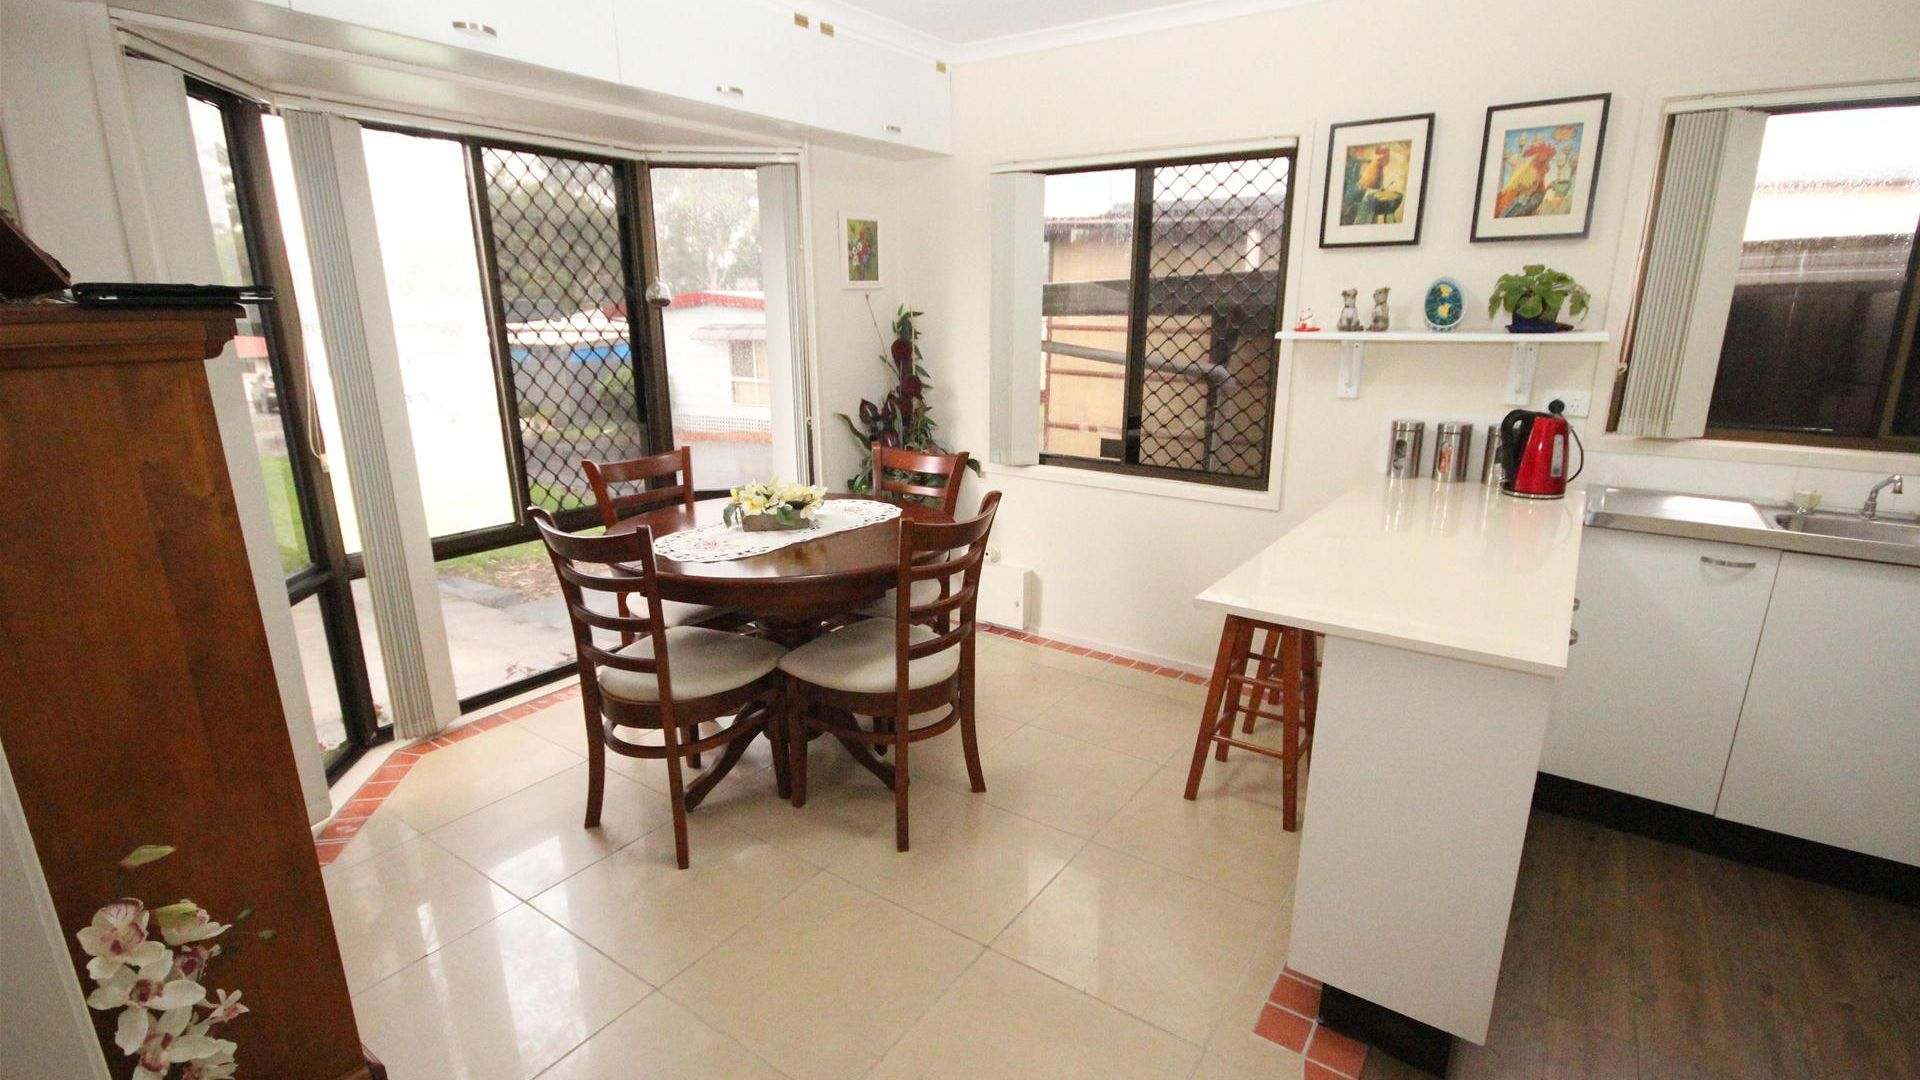 66/1a Cutler Drive, Wyong NSW 2259, Image 1